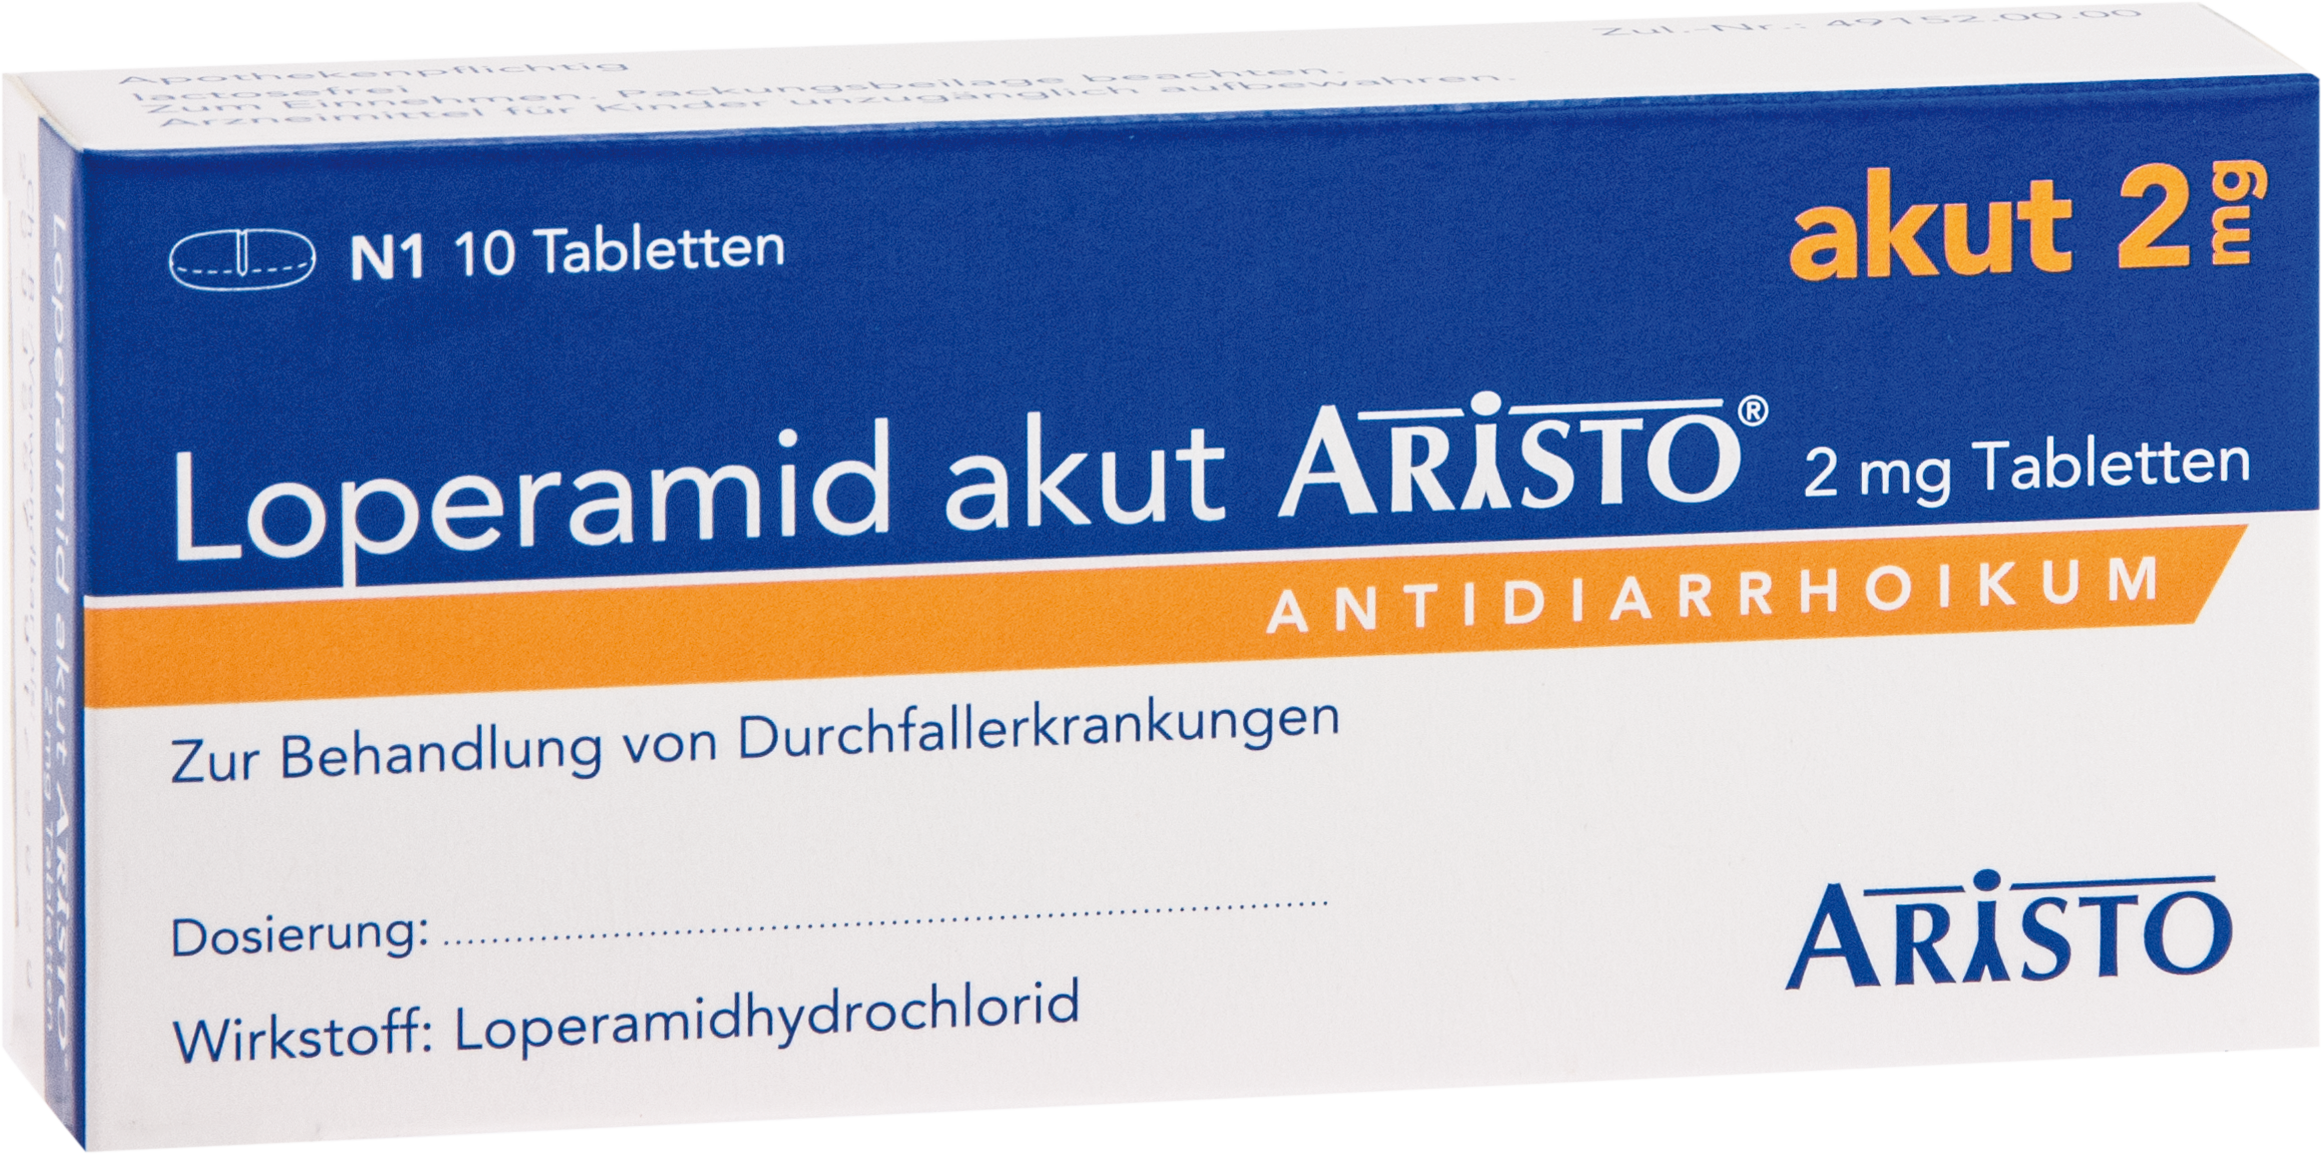 Loperamid akut Aristo 2mg Tabletten